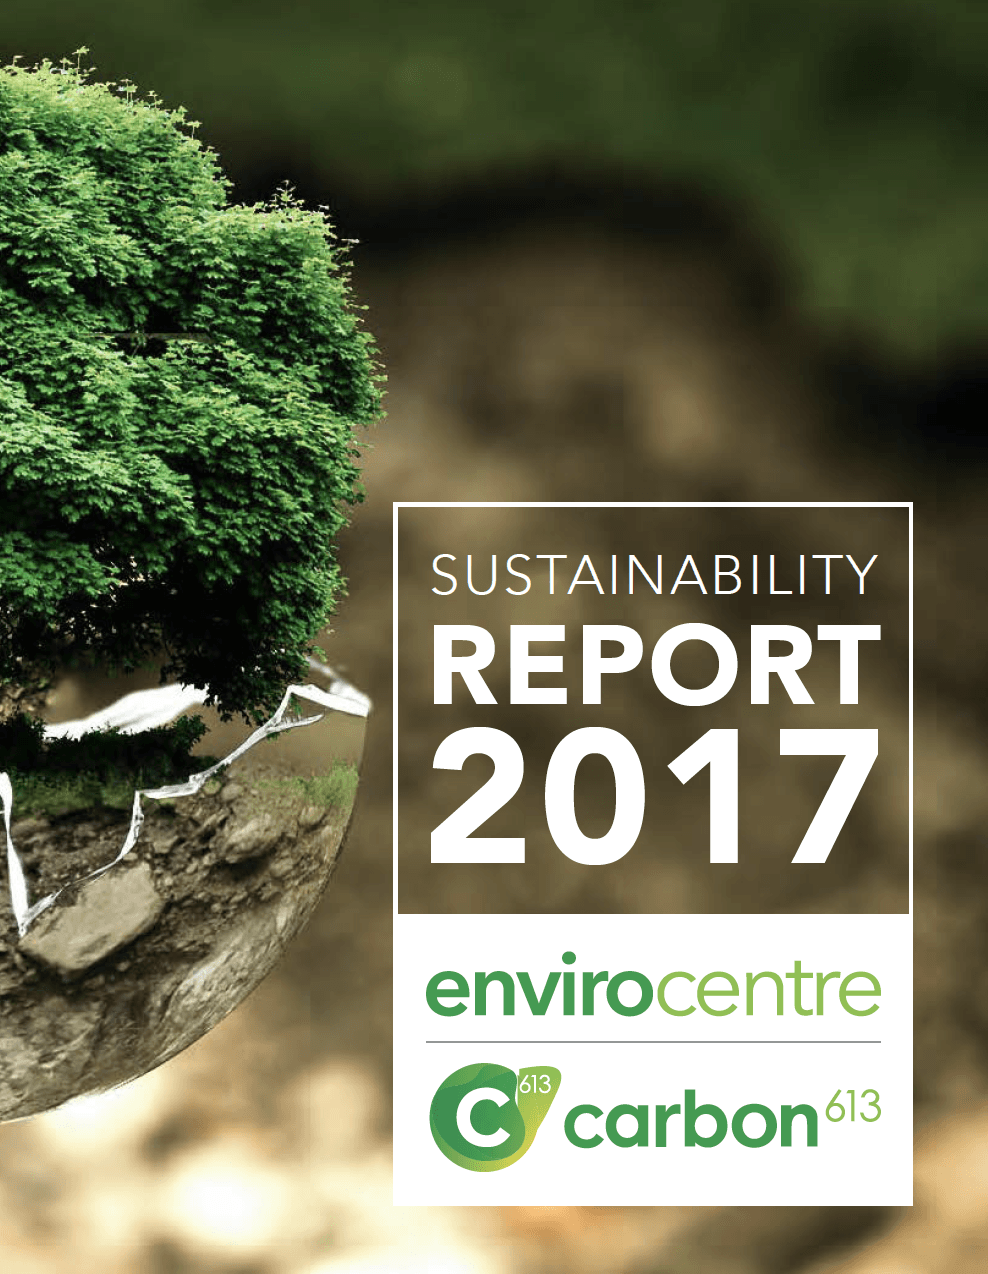 Carbon 613 Annual Report 2017 Cover Image